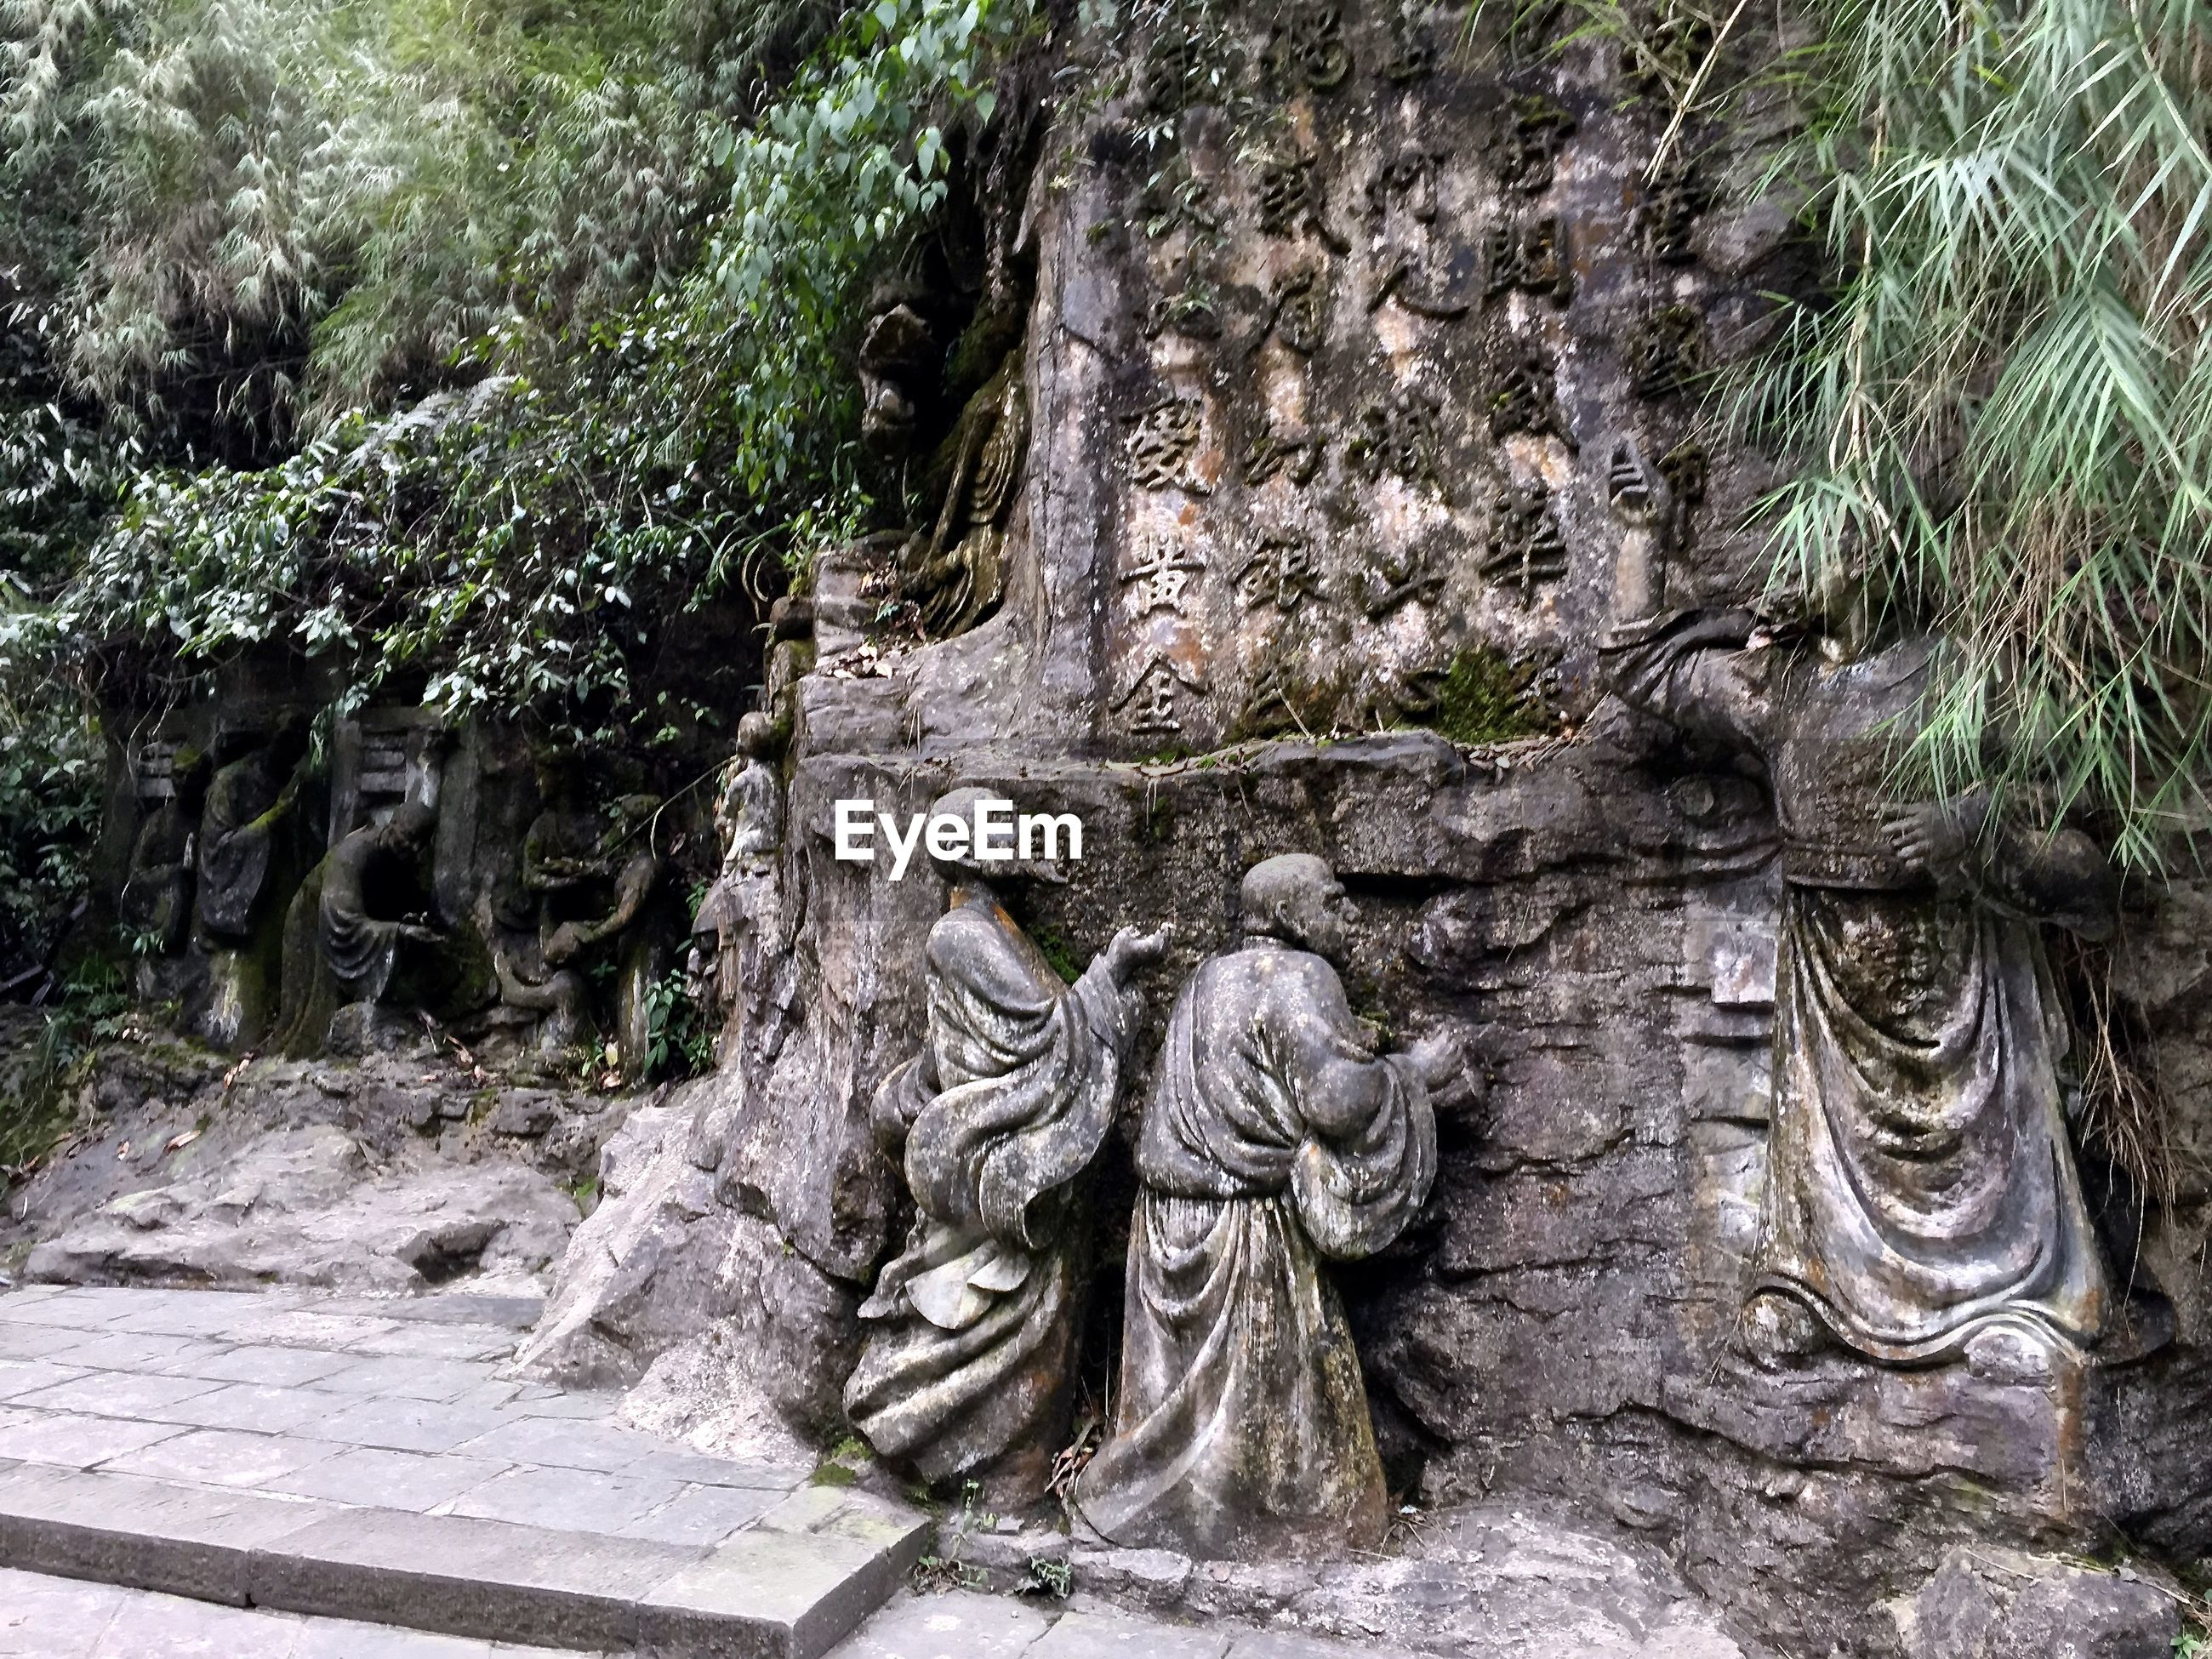 Statues by rocks at historic site